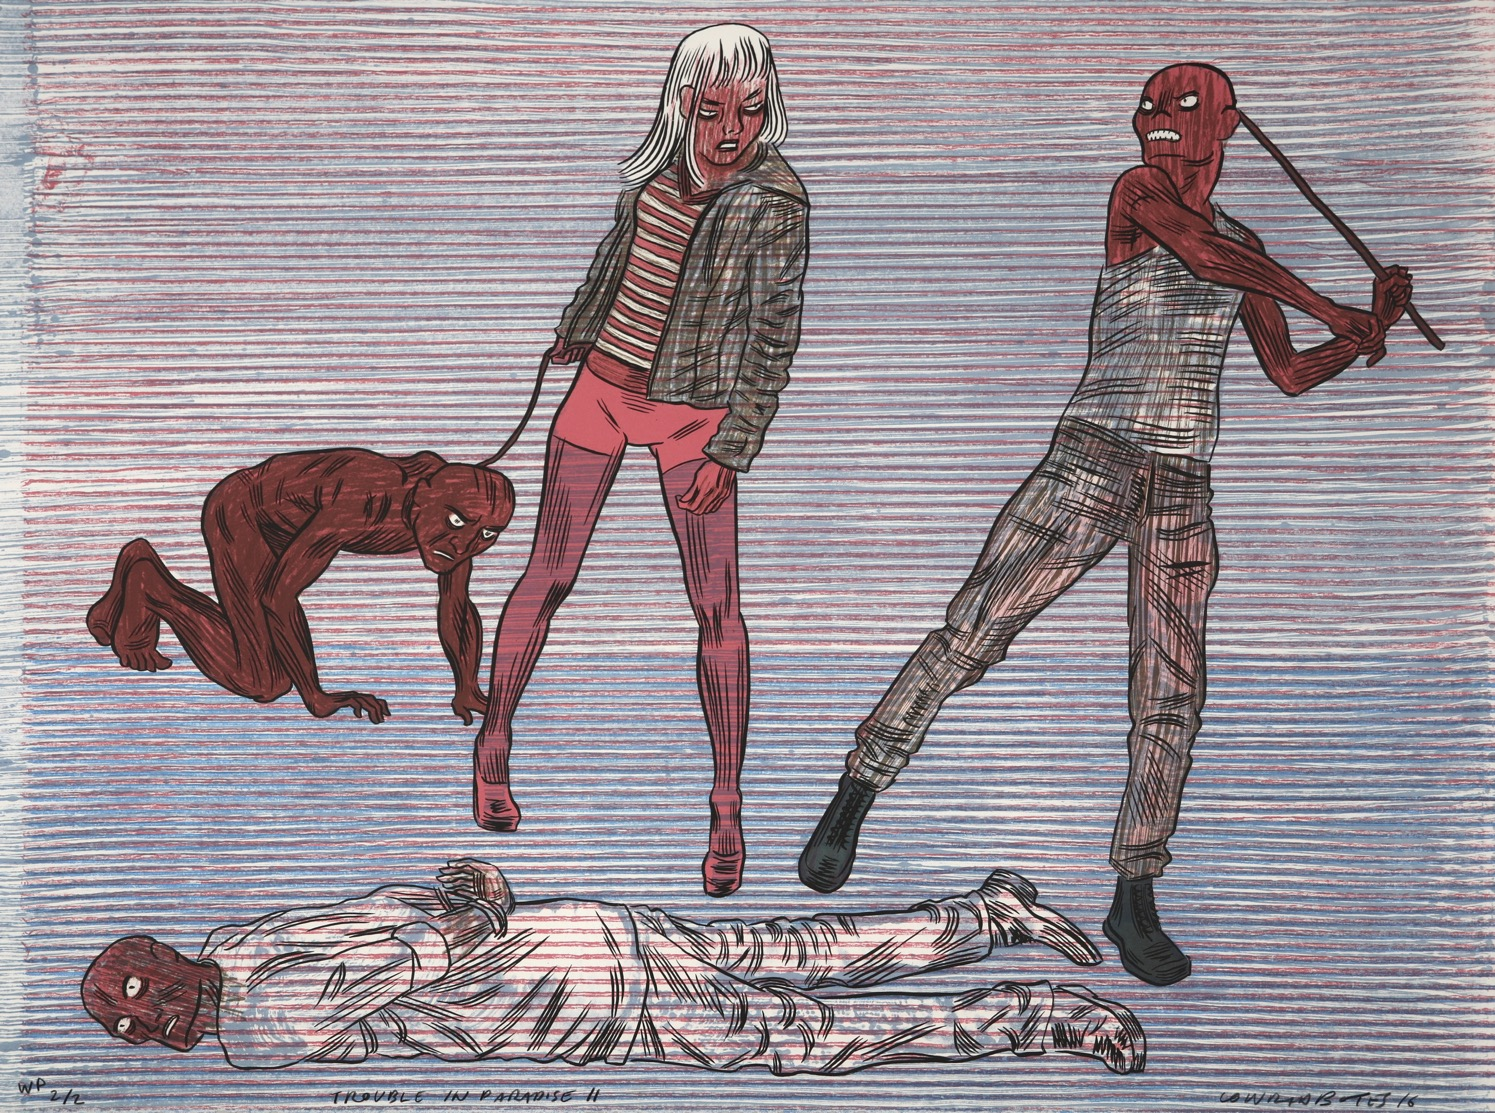 Four zombie-like human figures drawn in a comic style interacting with a striped background